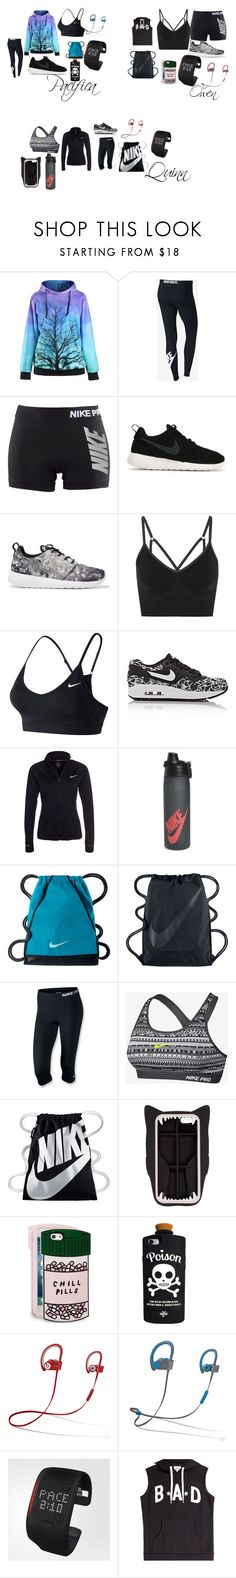 """Concert"" by teylorann ❤ liked on Polyvore featuring NIKE, STELLA McCARTNEY, ban.do, Valfré, Beats by Dr. Dre, adidas and Zoe Karssen"